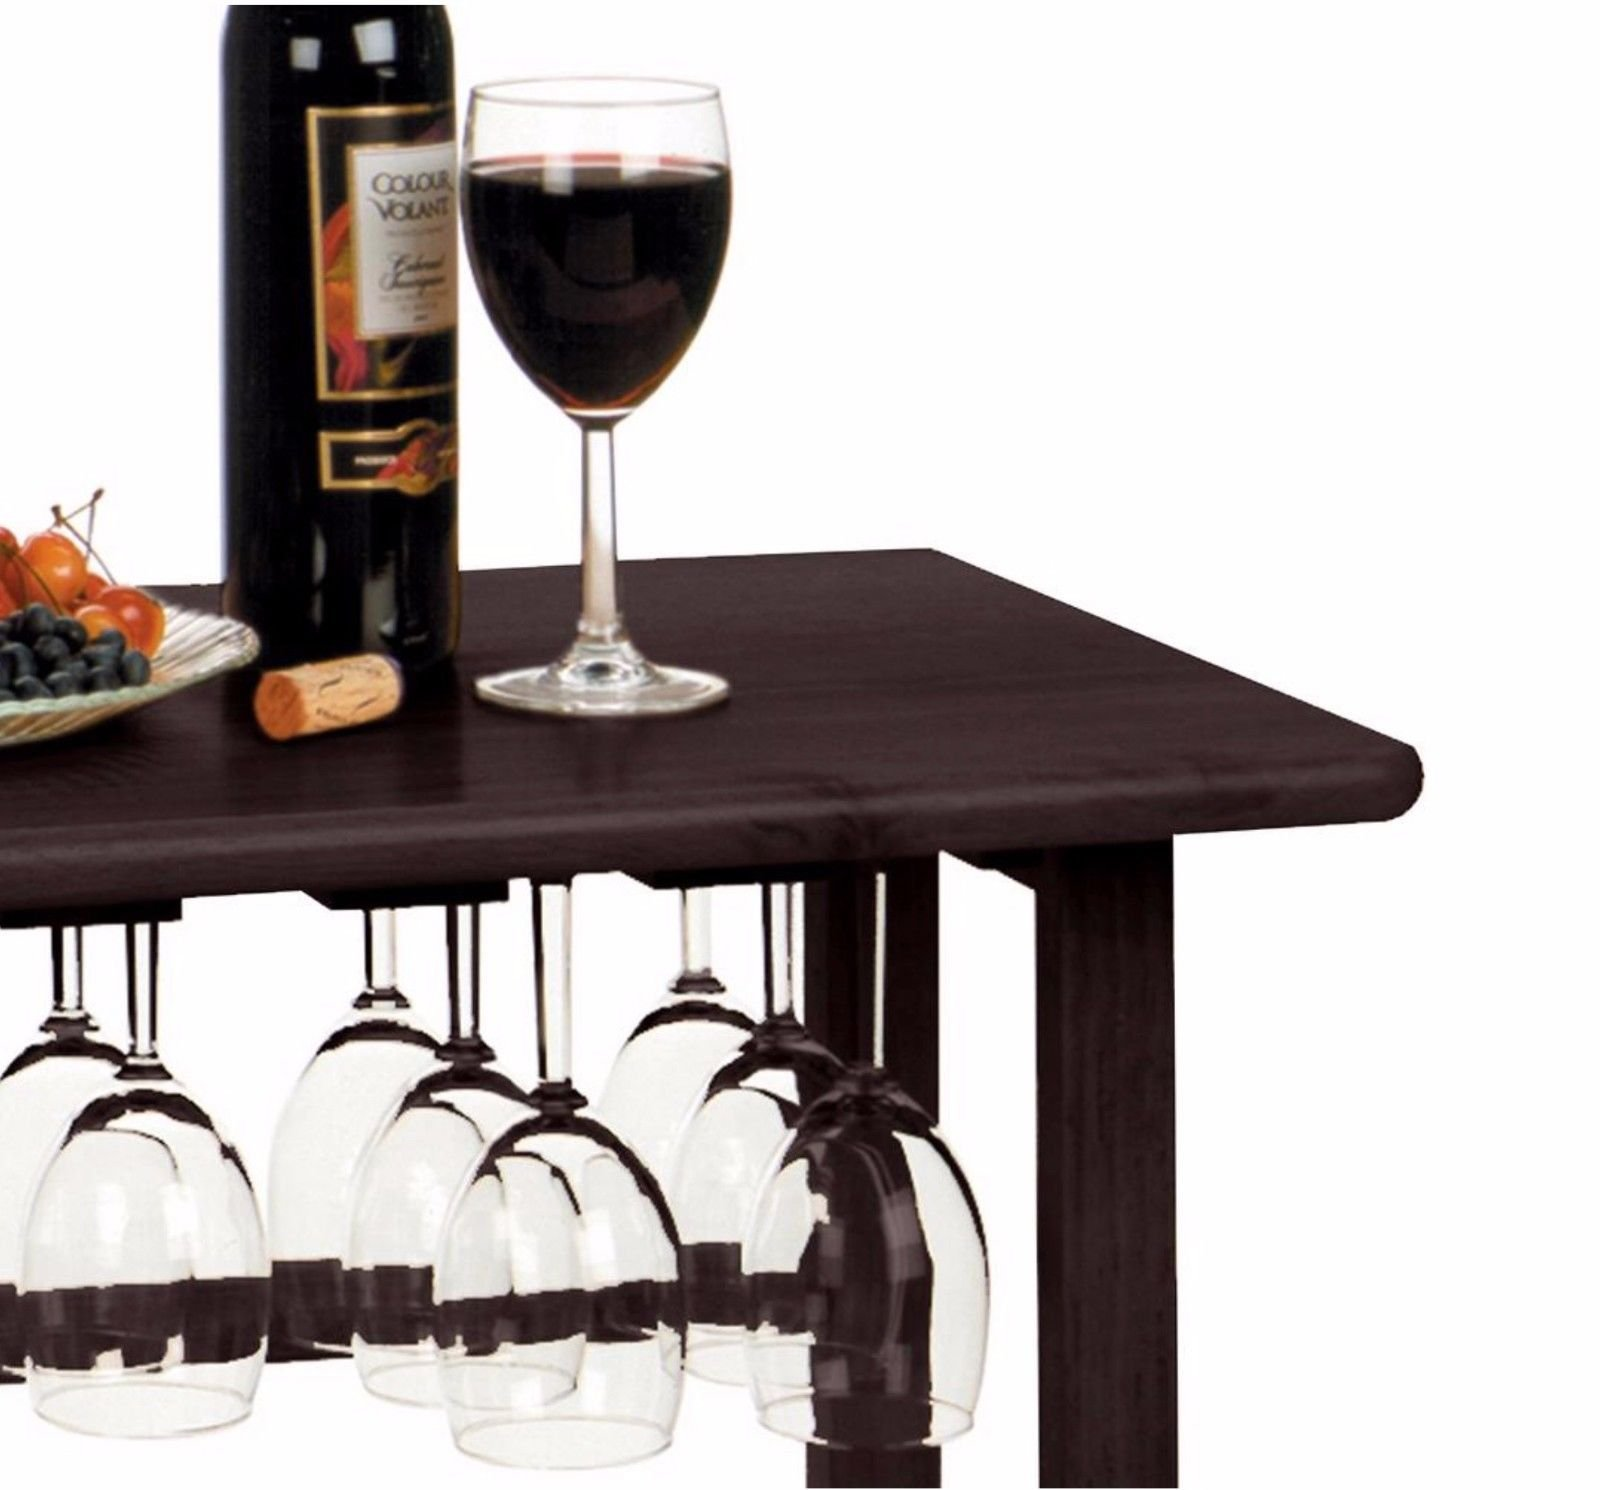 Wood Wine Rack 24 Bottle Glass Hanger Espresso Holder Storage Shelf Display by RX-789 (Image #1)